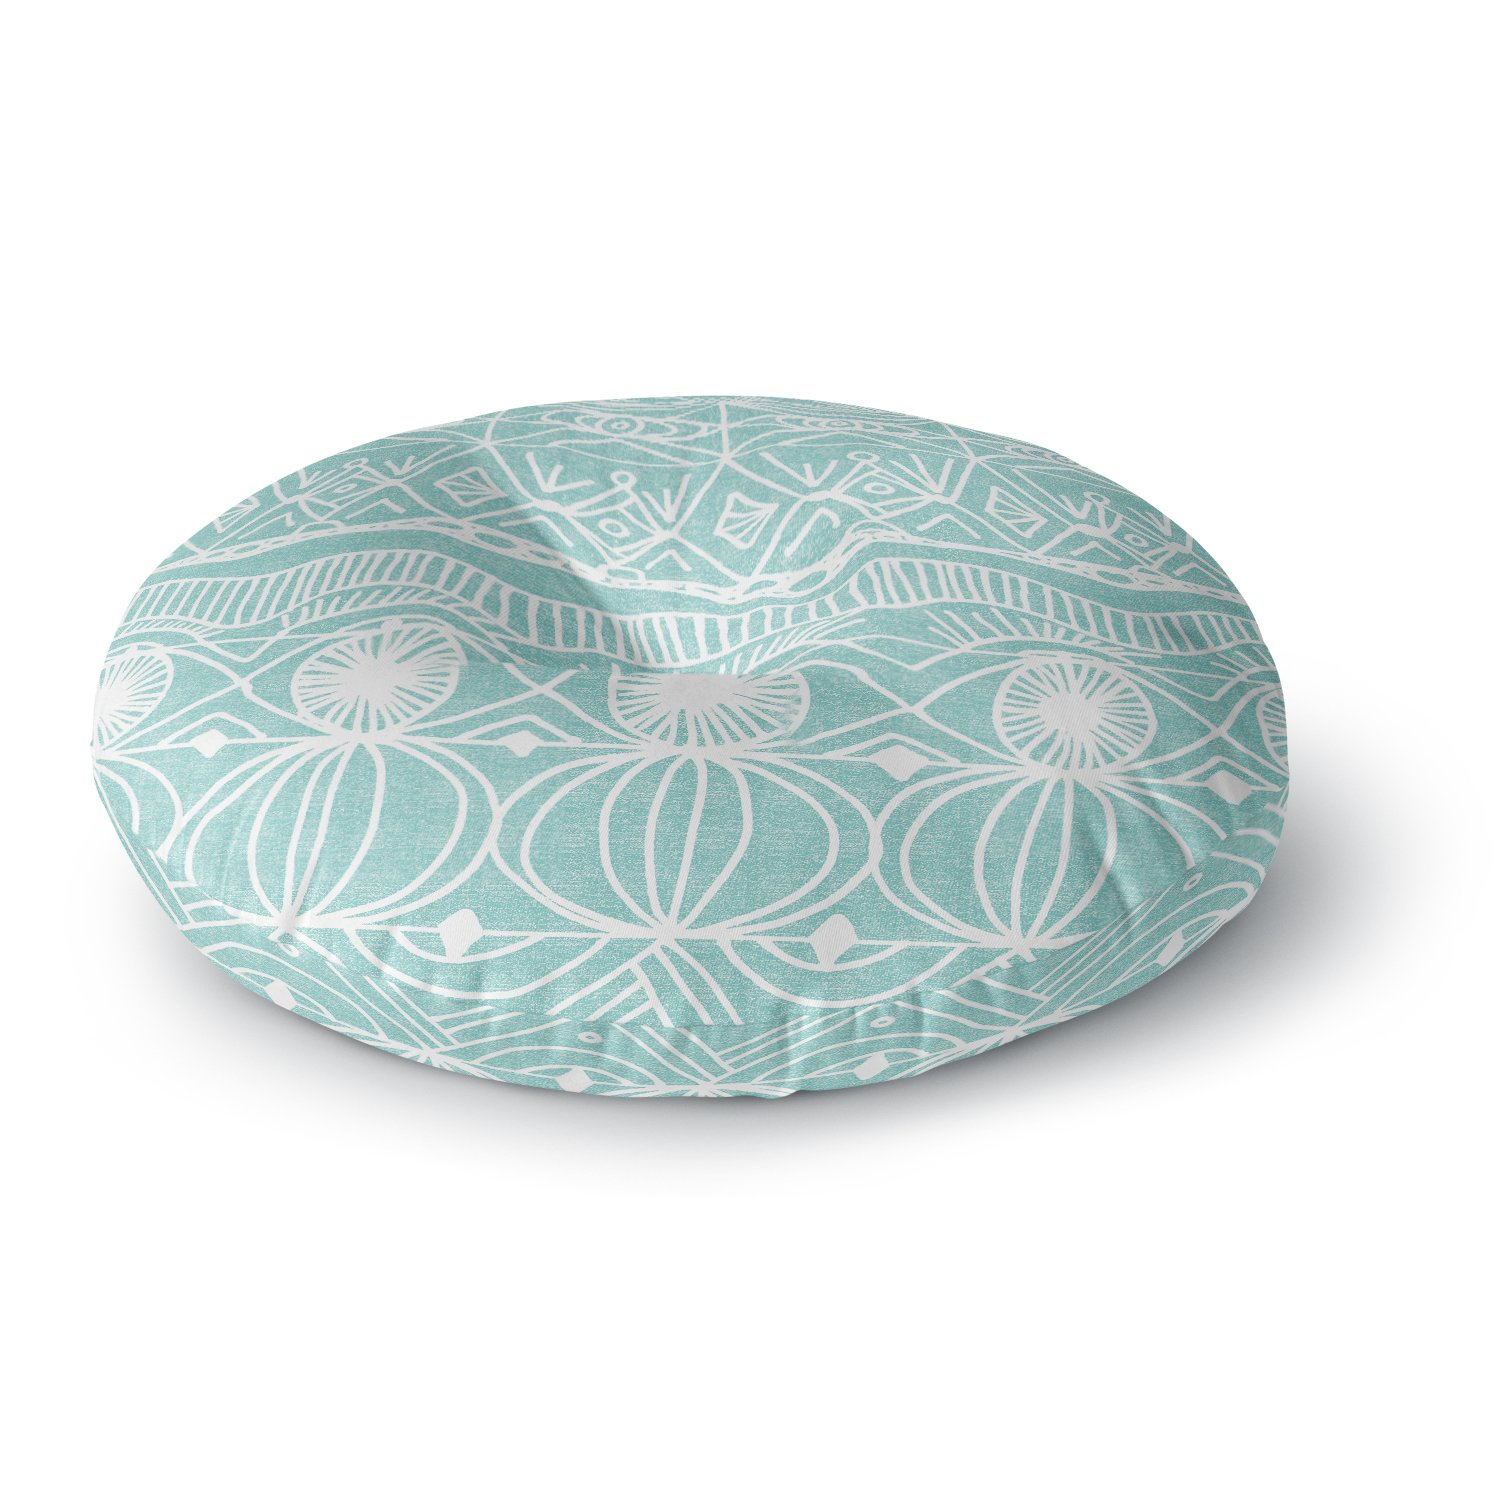 KESS InHouse Catherine Holcombe Beach Blanket Bingo Round Floor Pillow by Kess InHouse